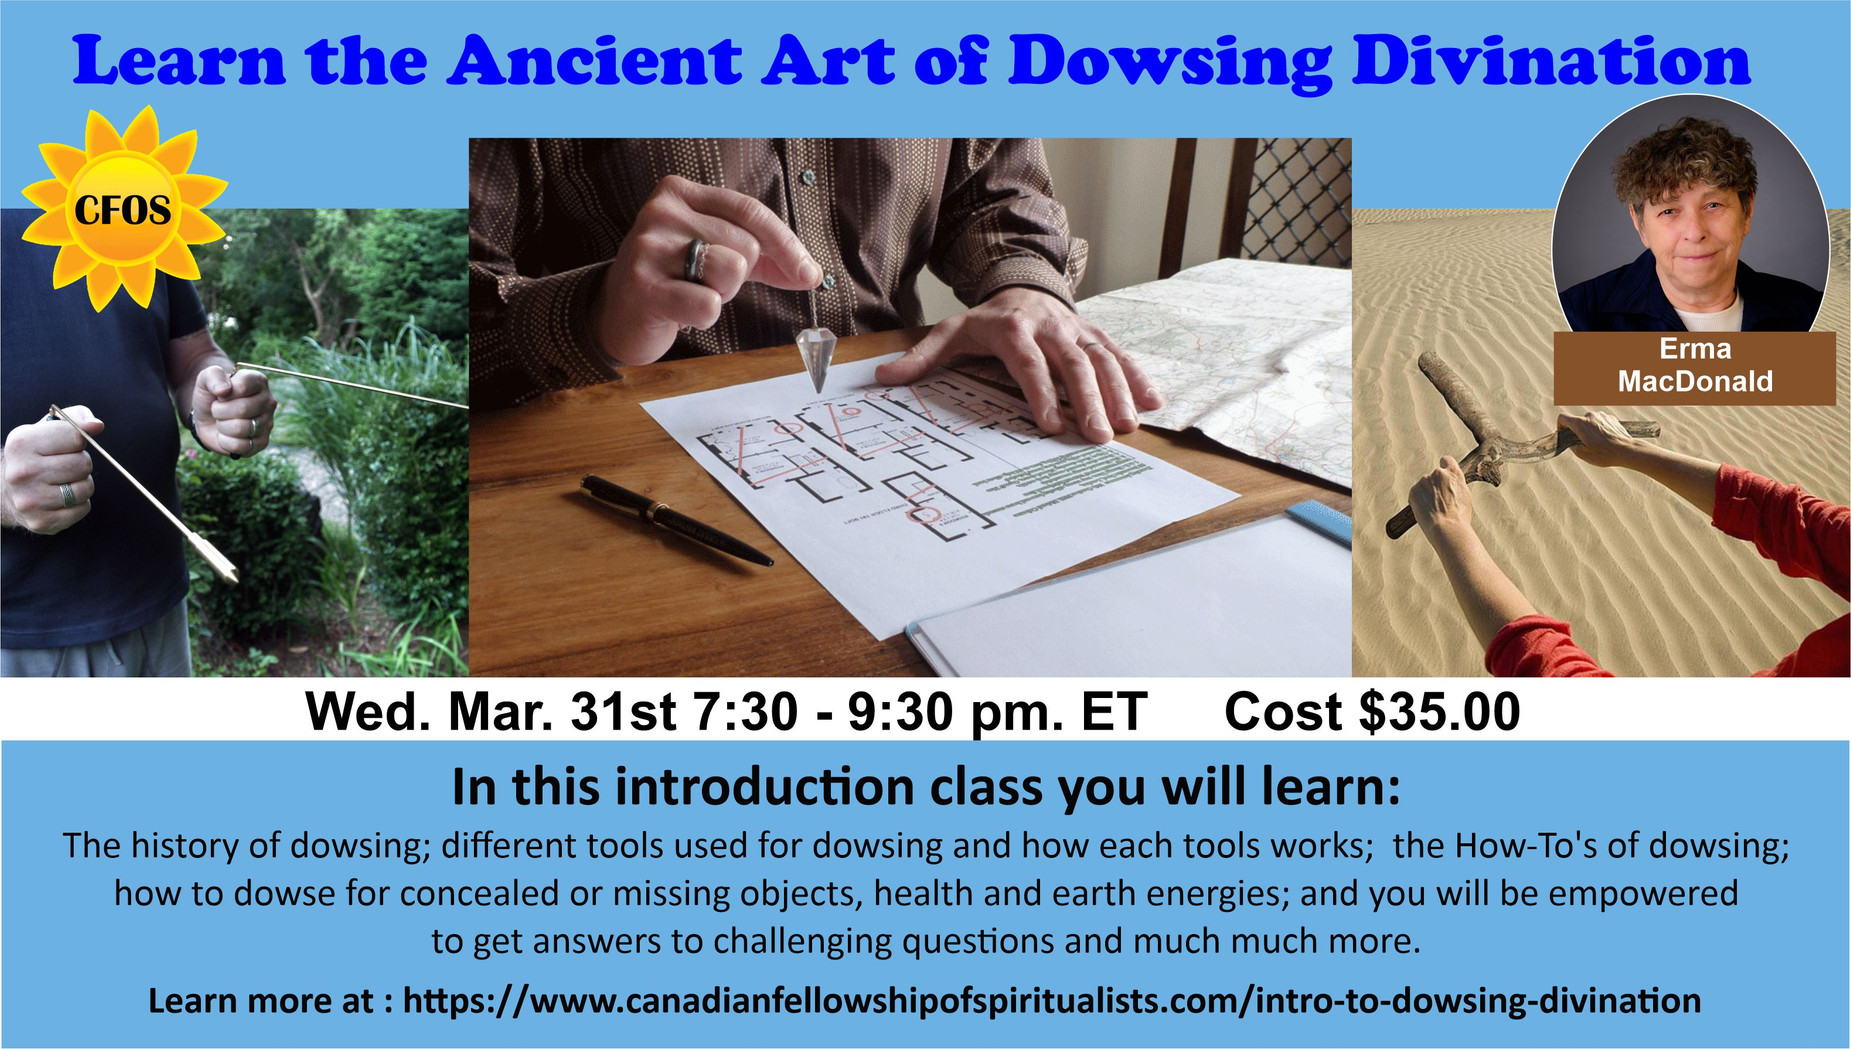 Intro to Dowsing Divination